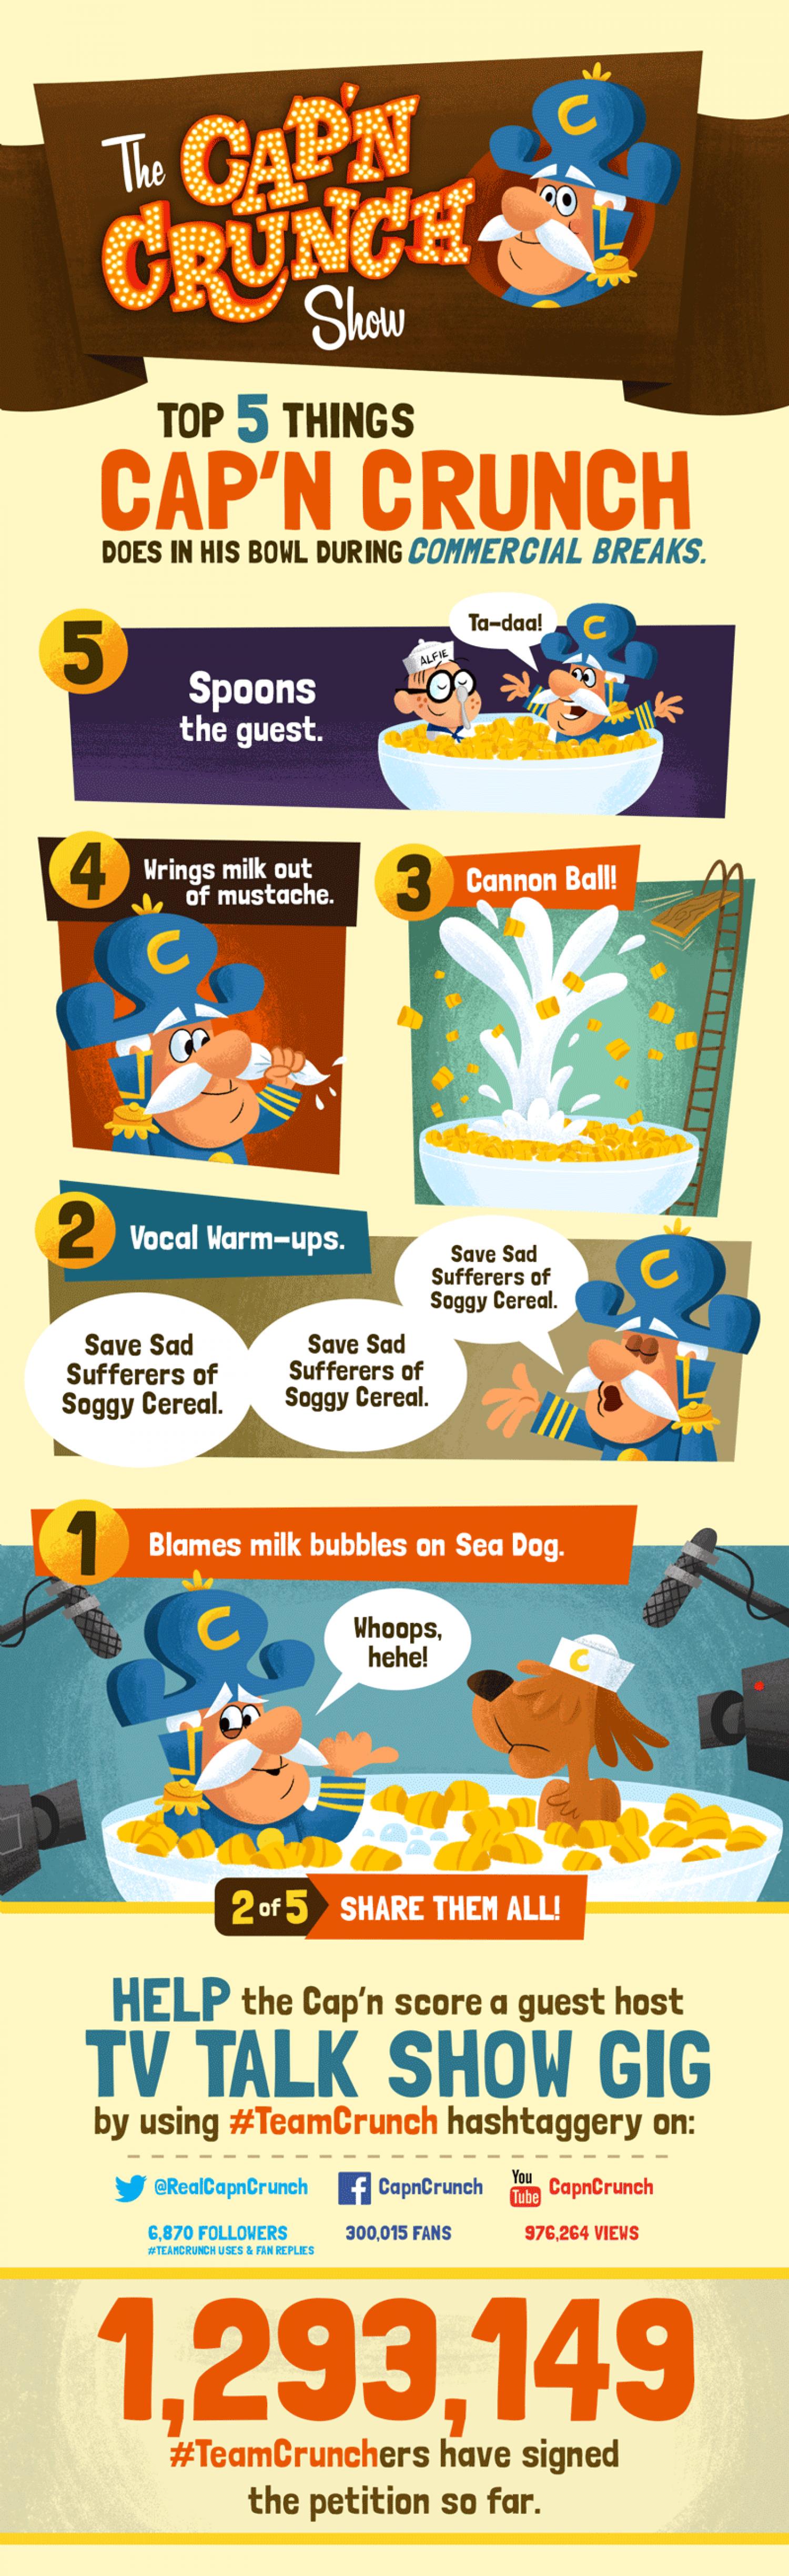 Top Five Things Cap'n Crunch Does In His Bowl During Commercial Breaks Infographic